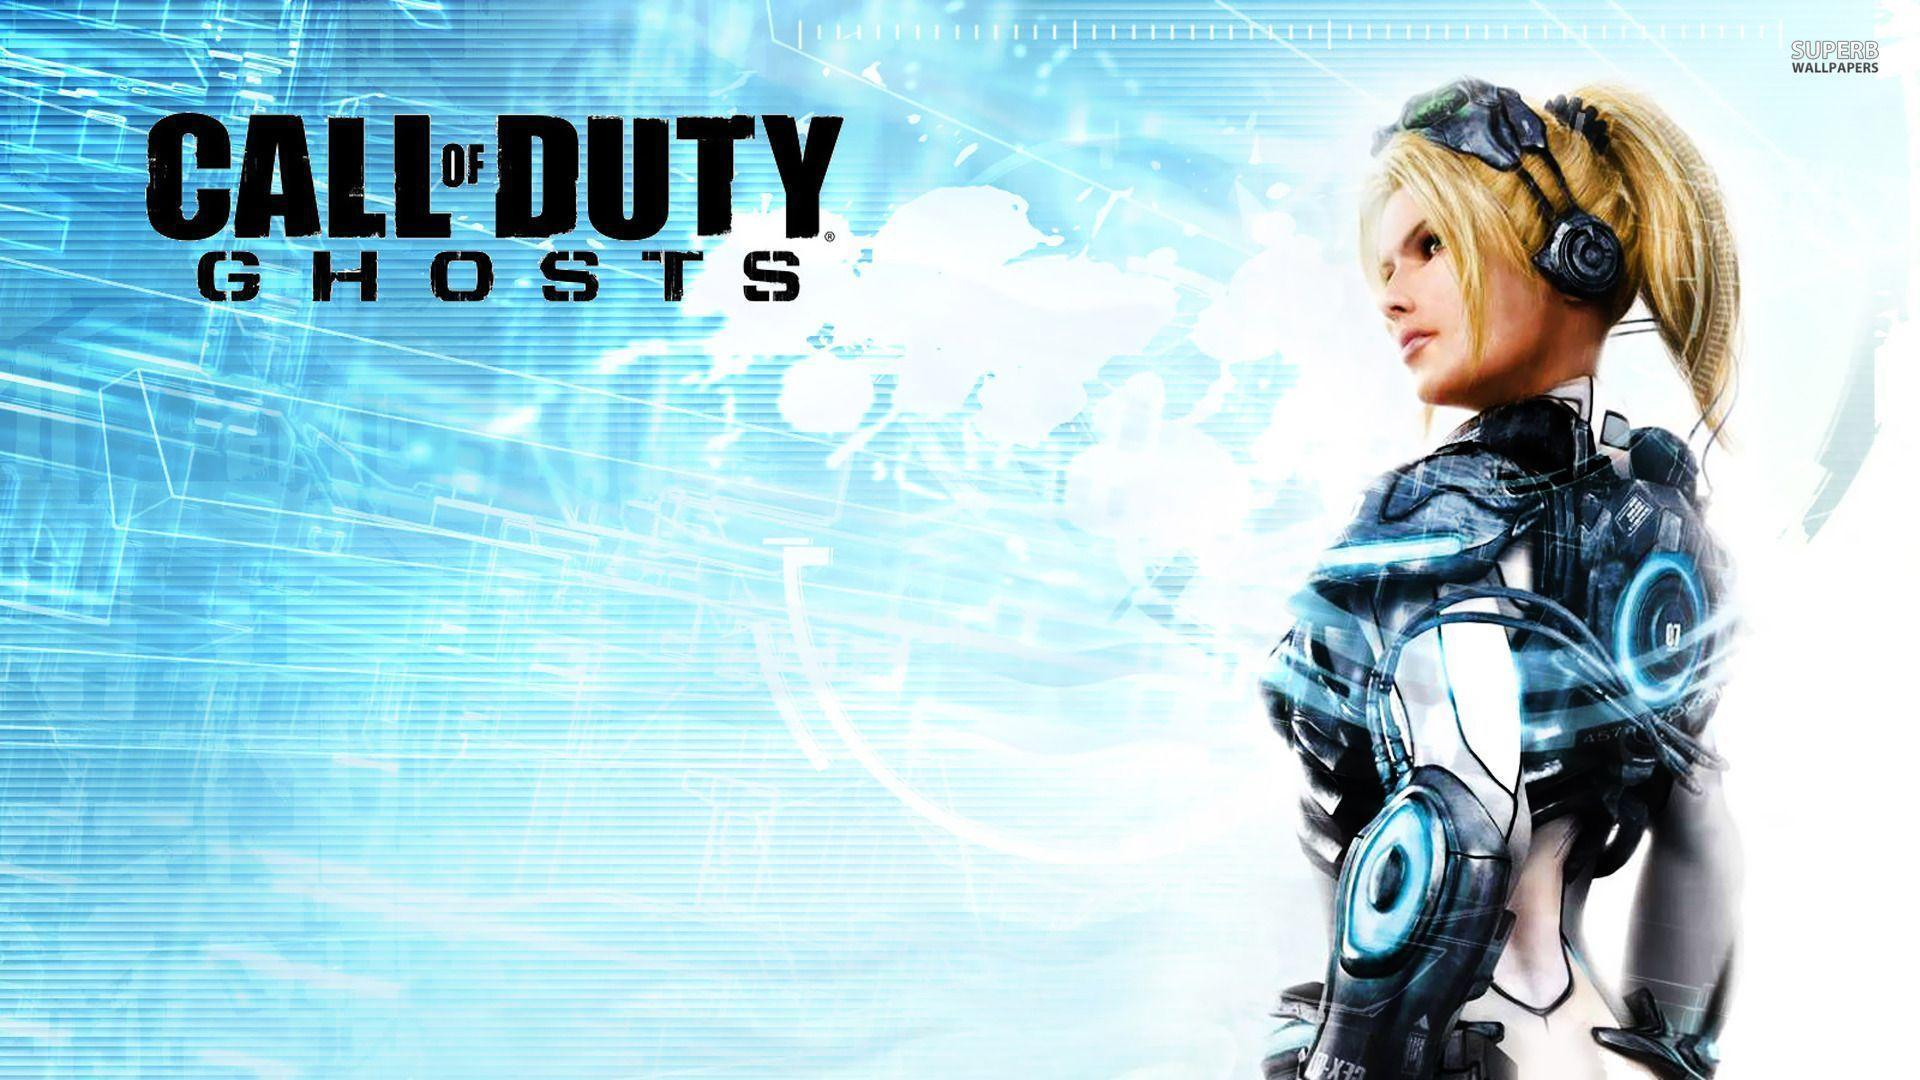 Call Of Duty Ghost Wallpapers Xcall Of Duty Ghosts Wallpapers